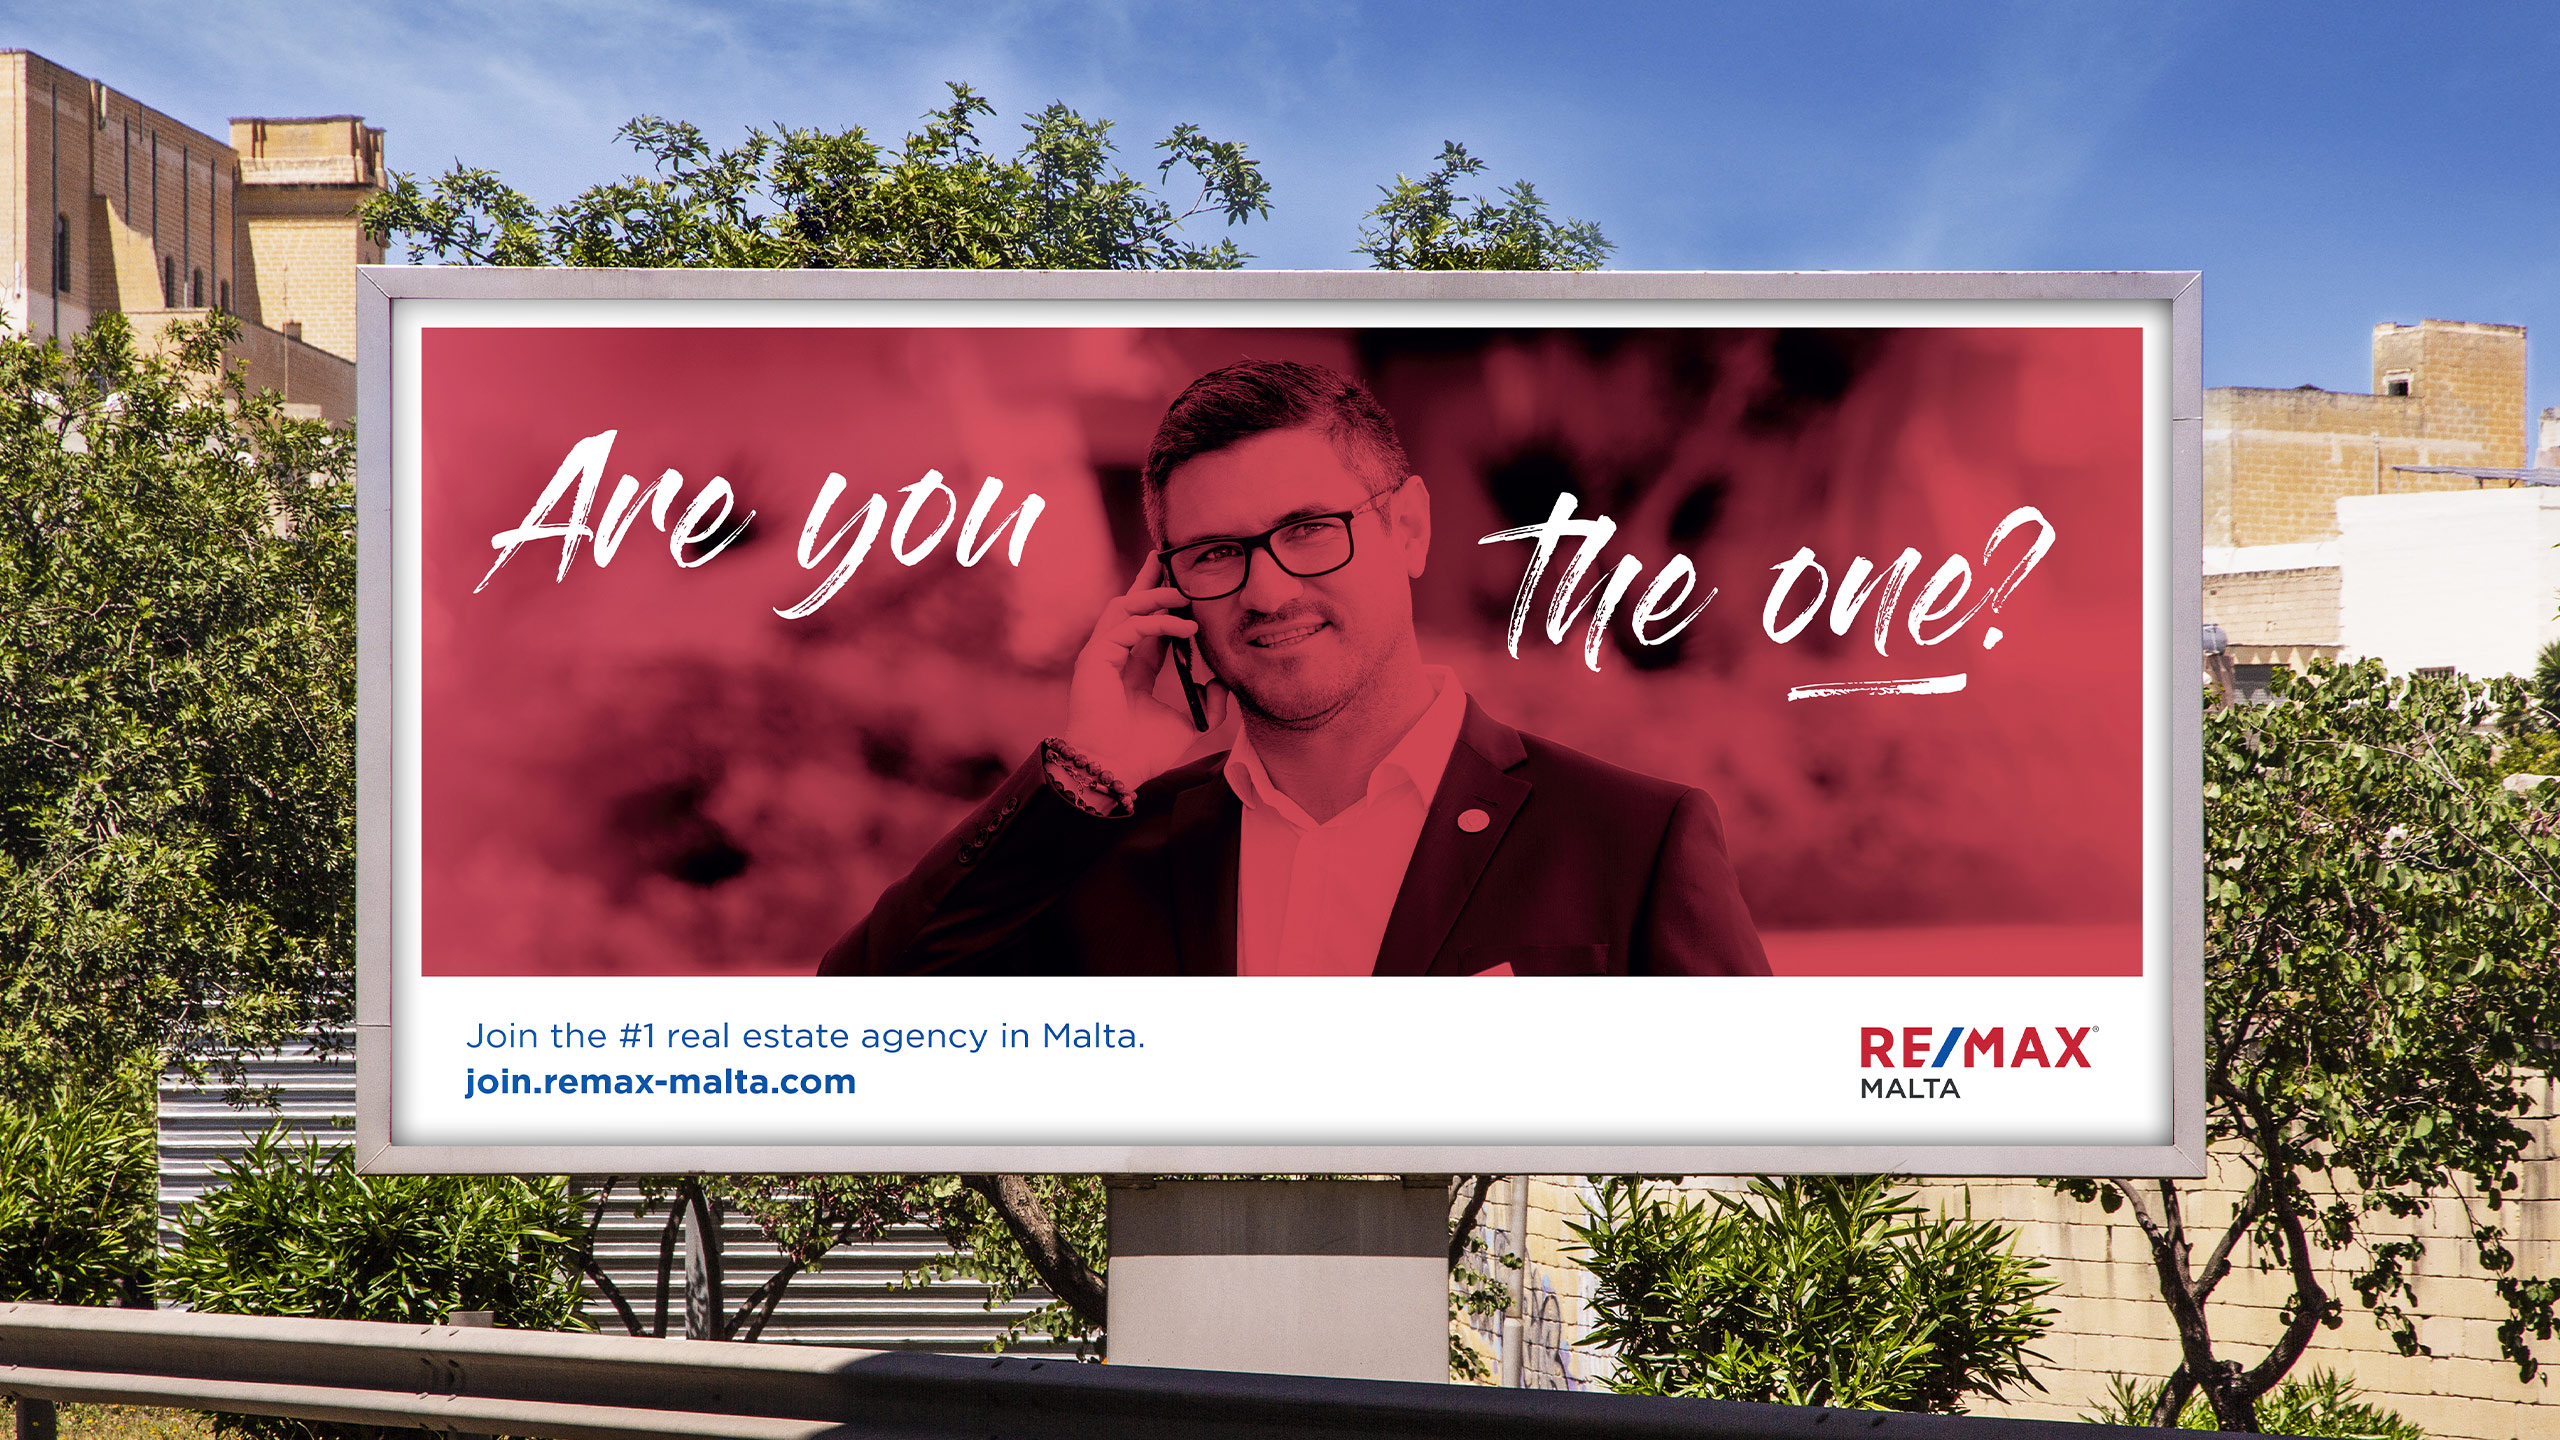 REMAX Recruitment Billboard